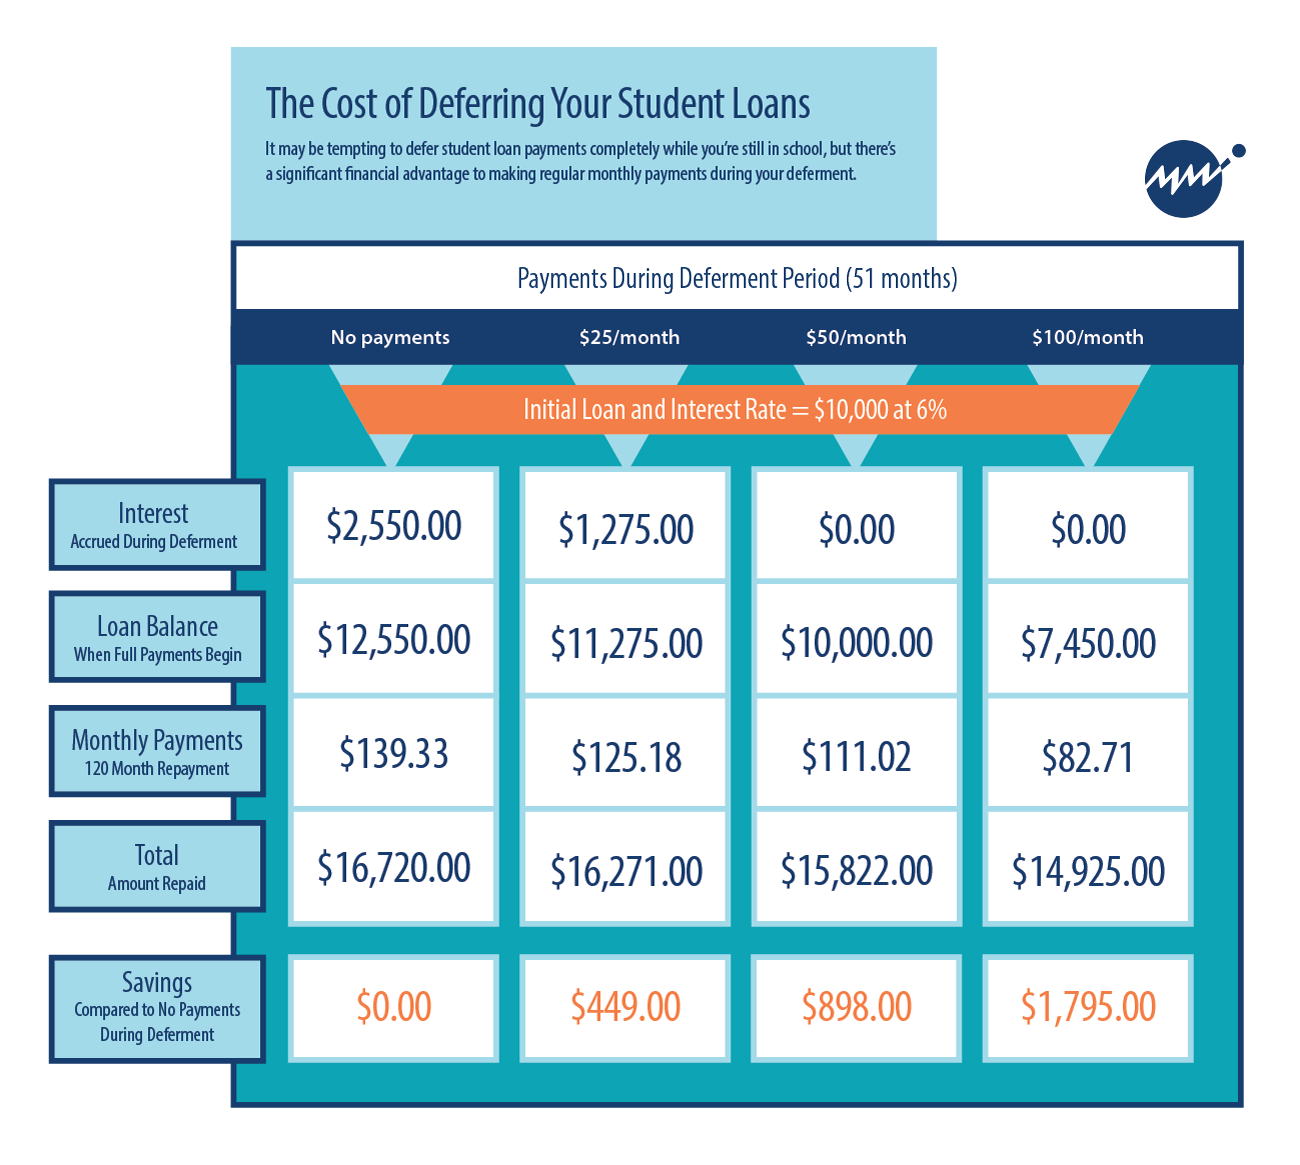 Student loan deferment cost analysis